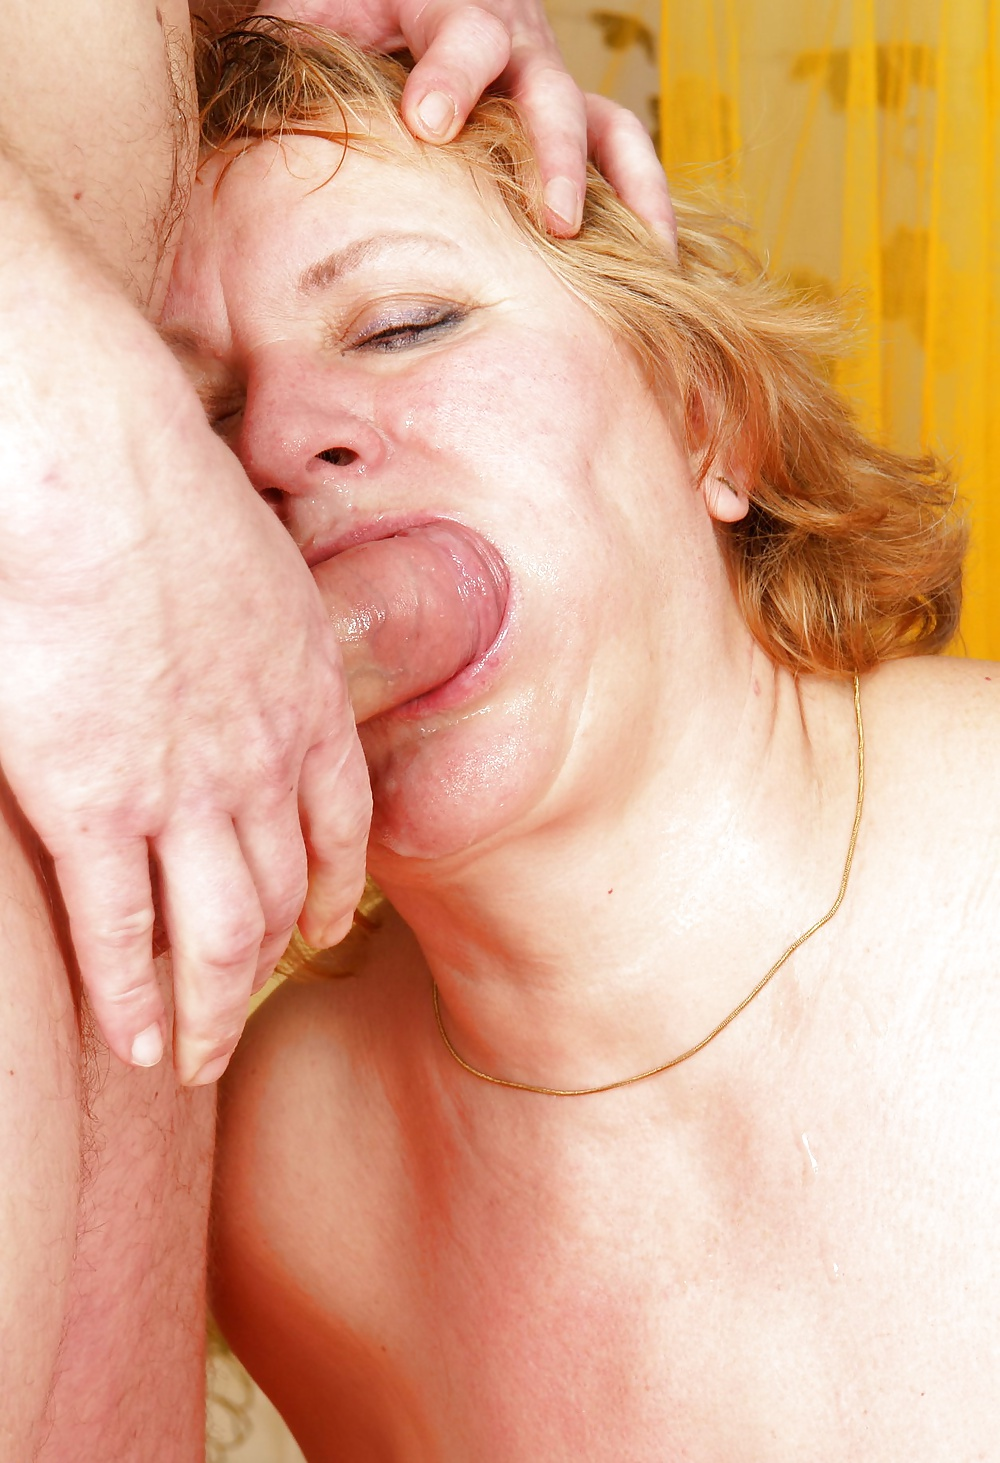 Submissive granny face fucked and anally dominated pov style